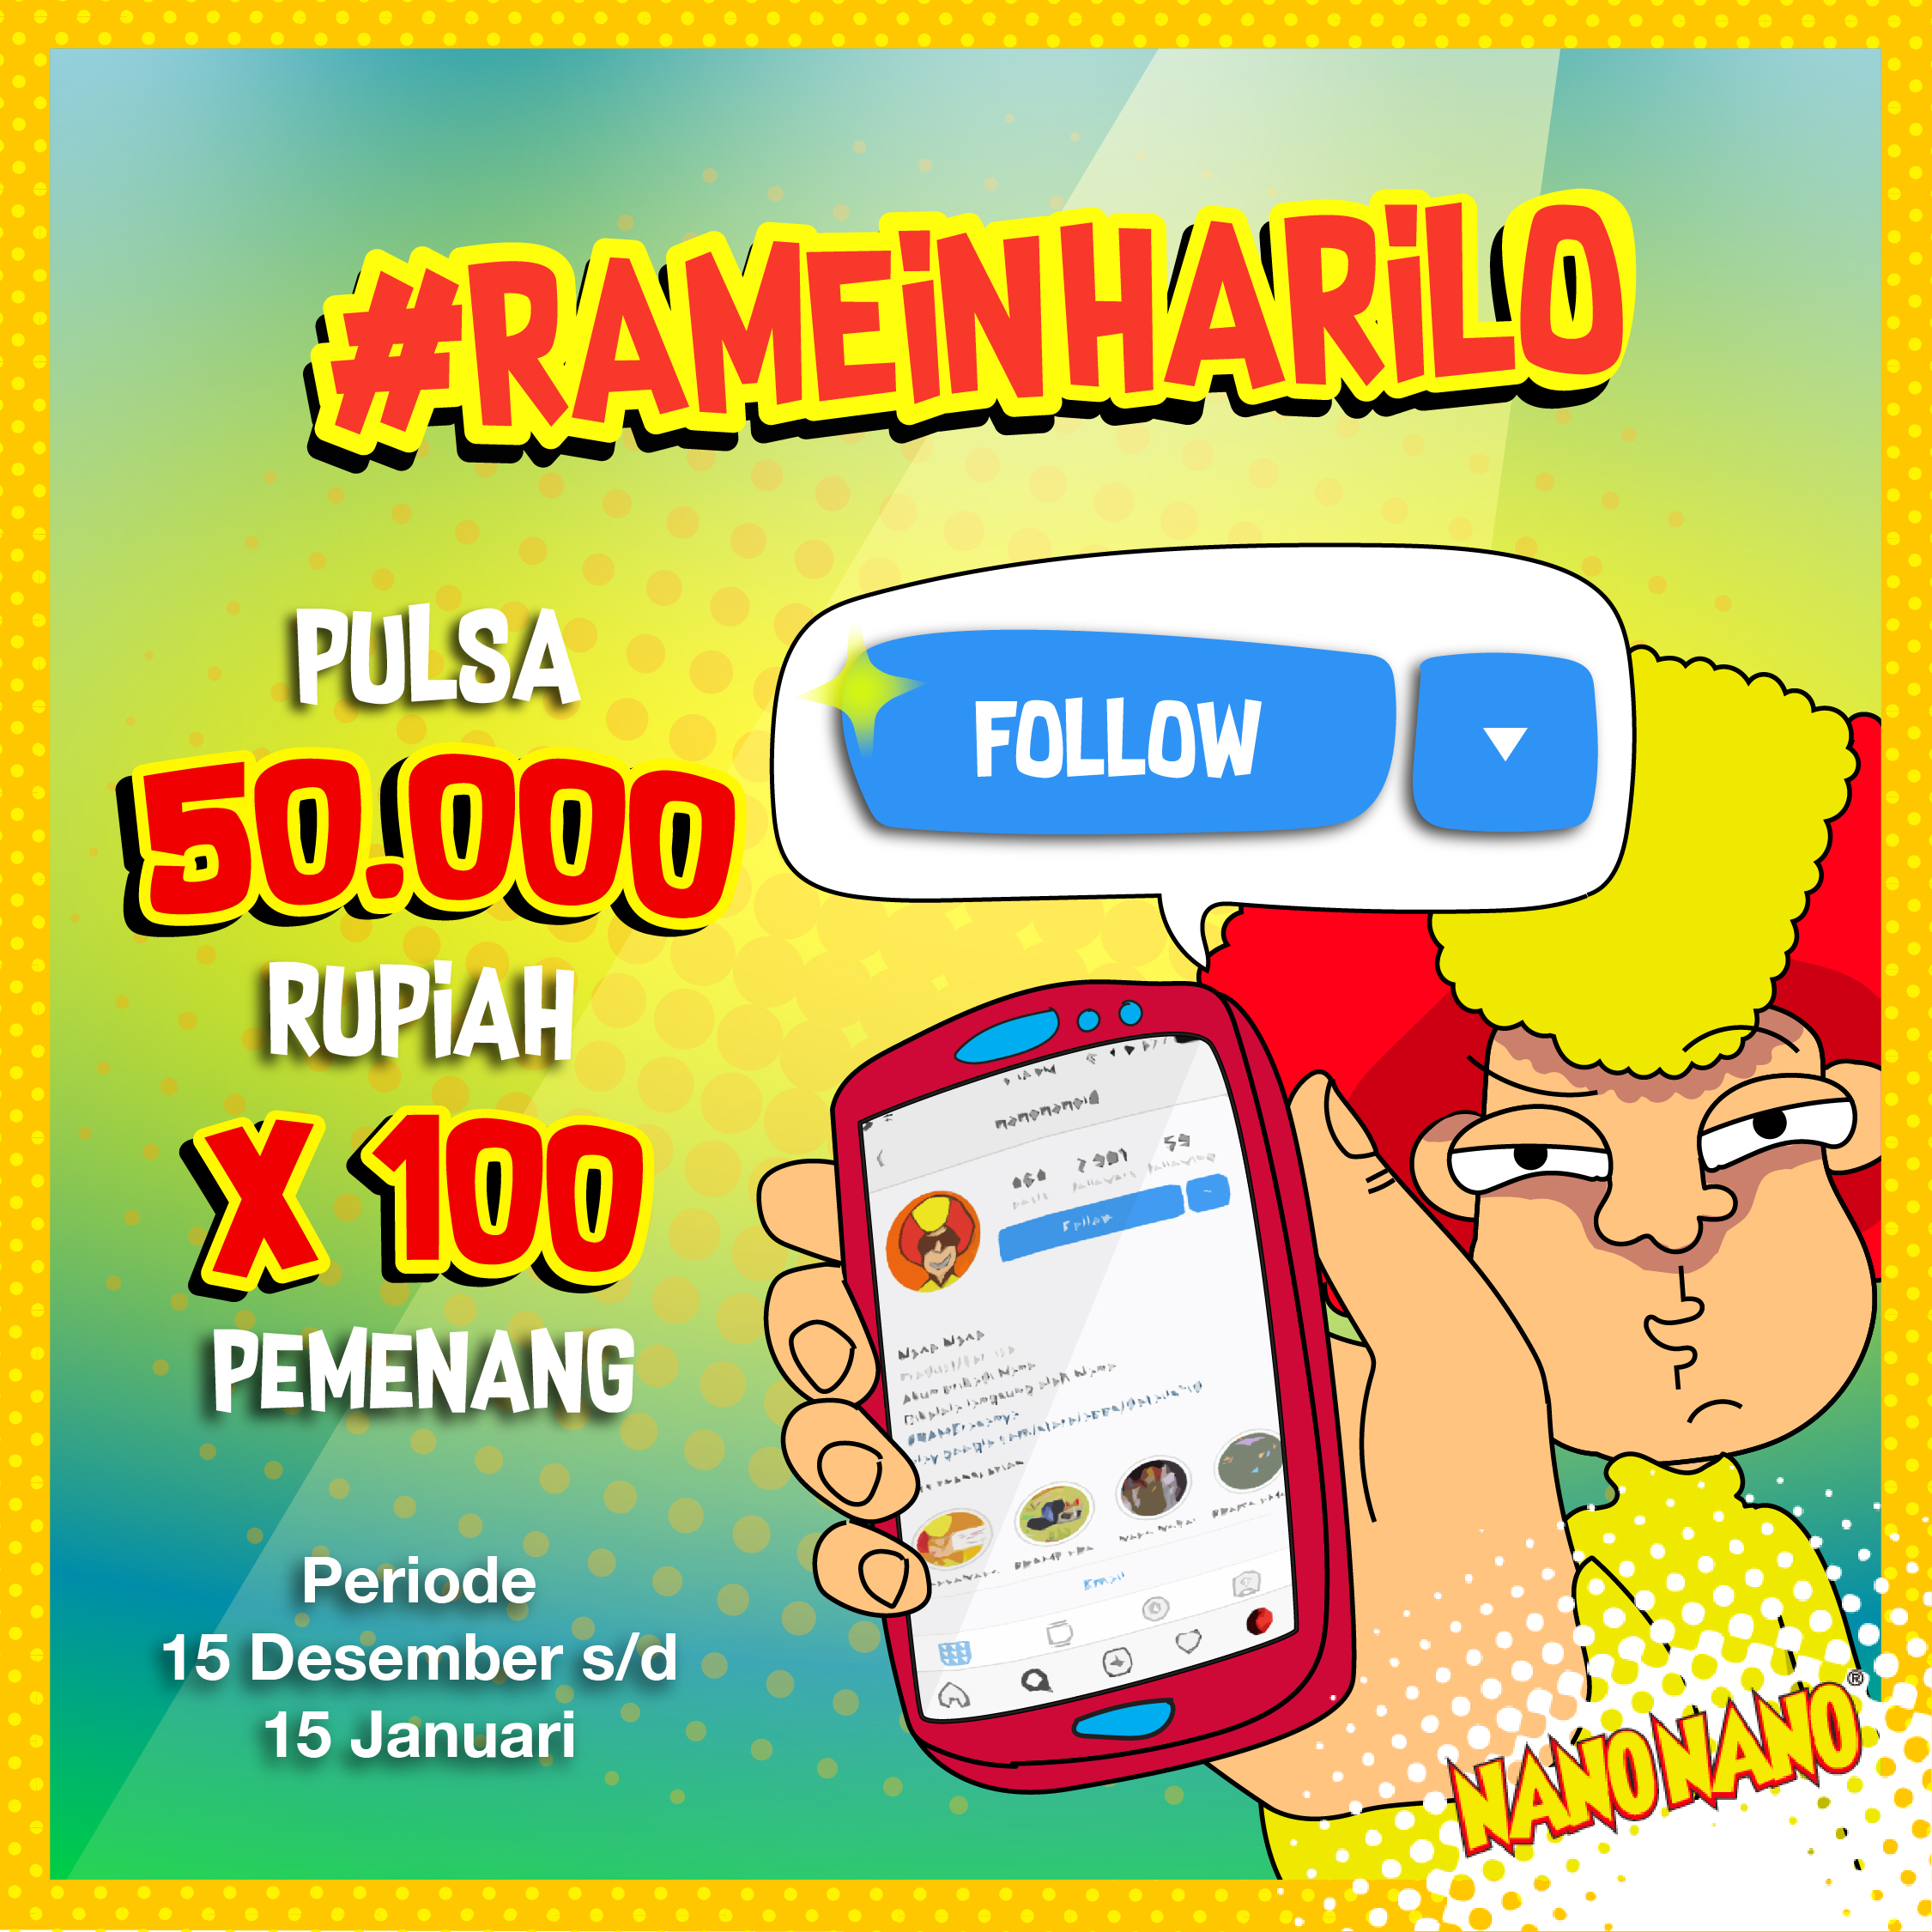 Nano RAMEinHariLo Feed Full Text